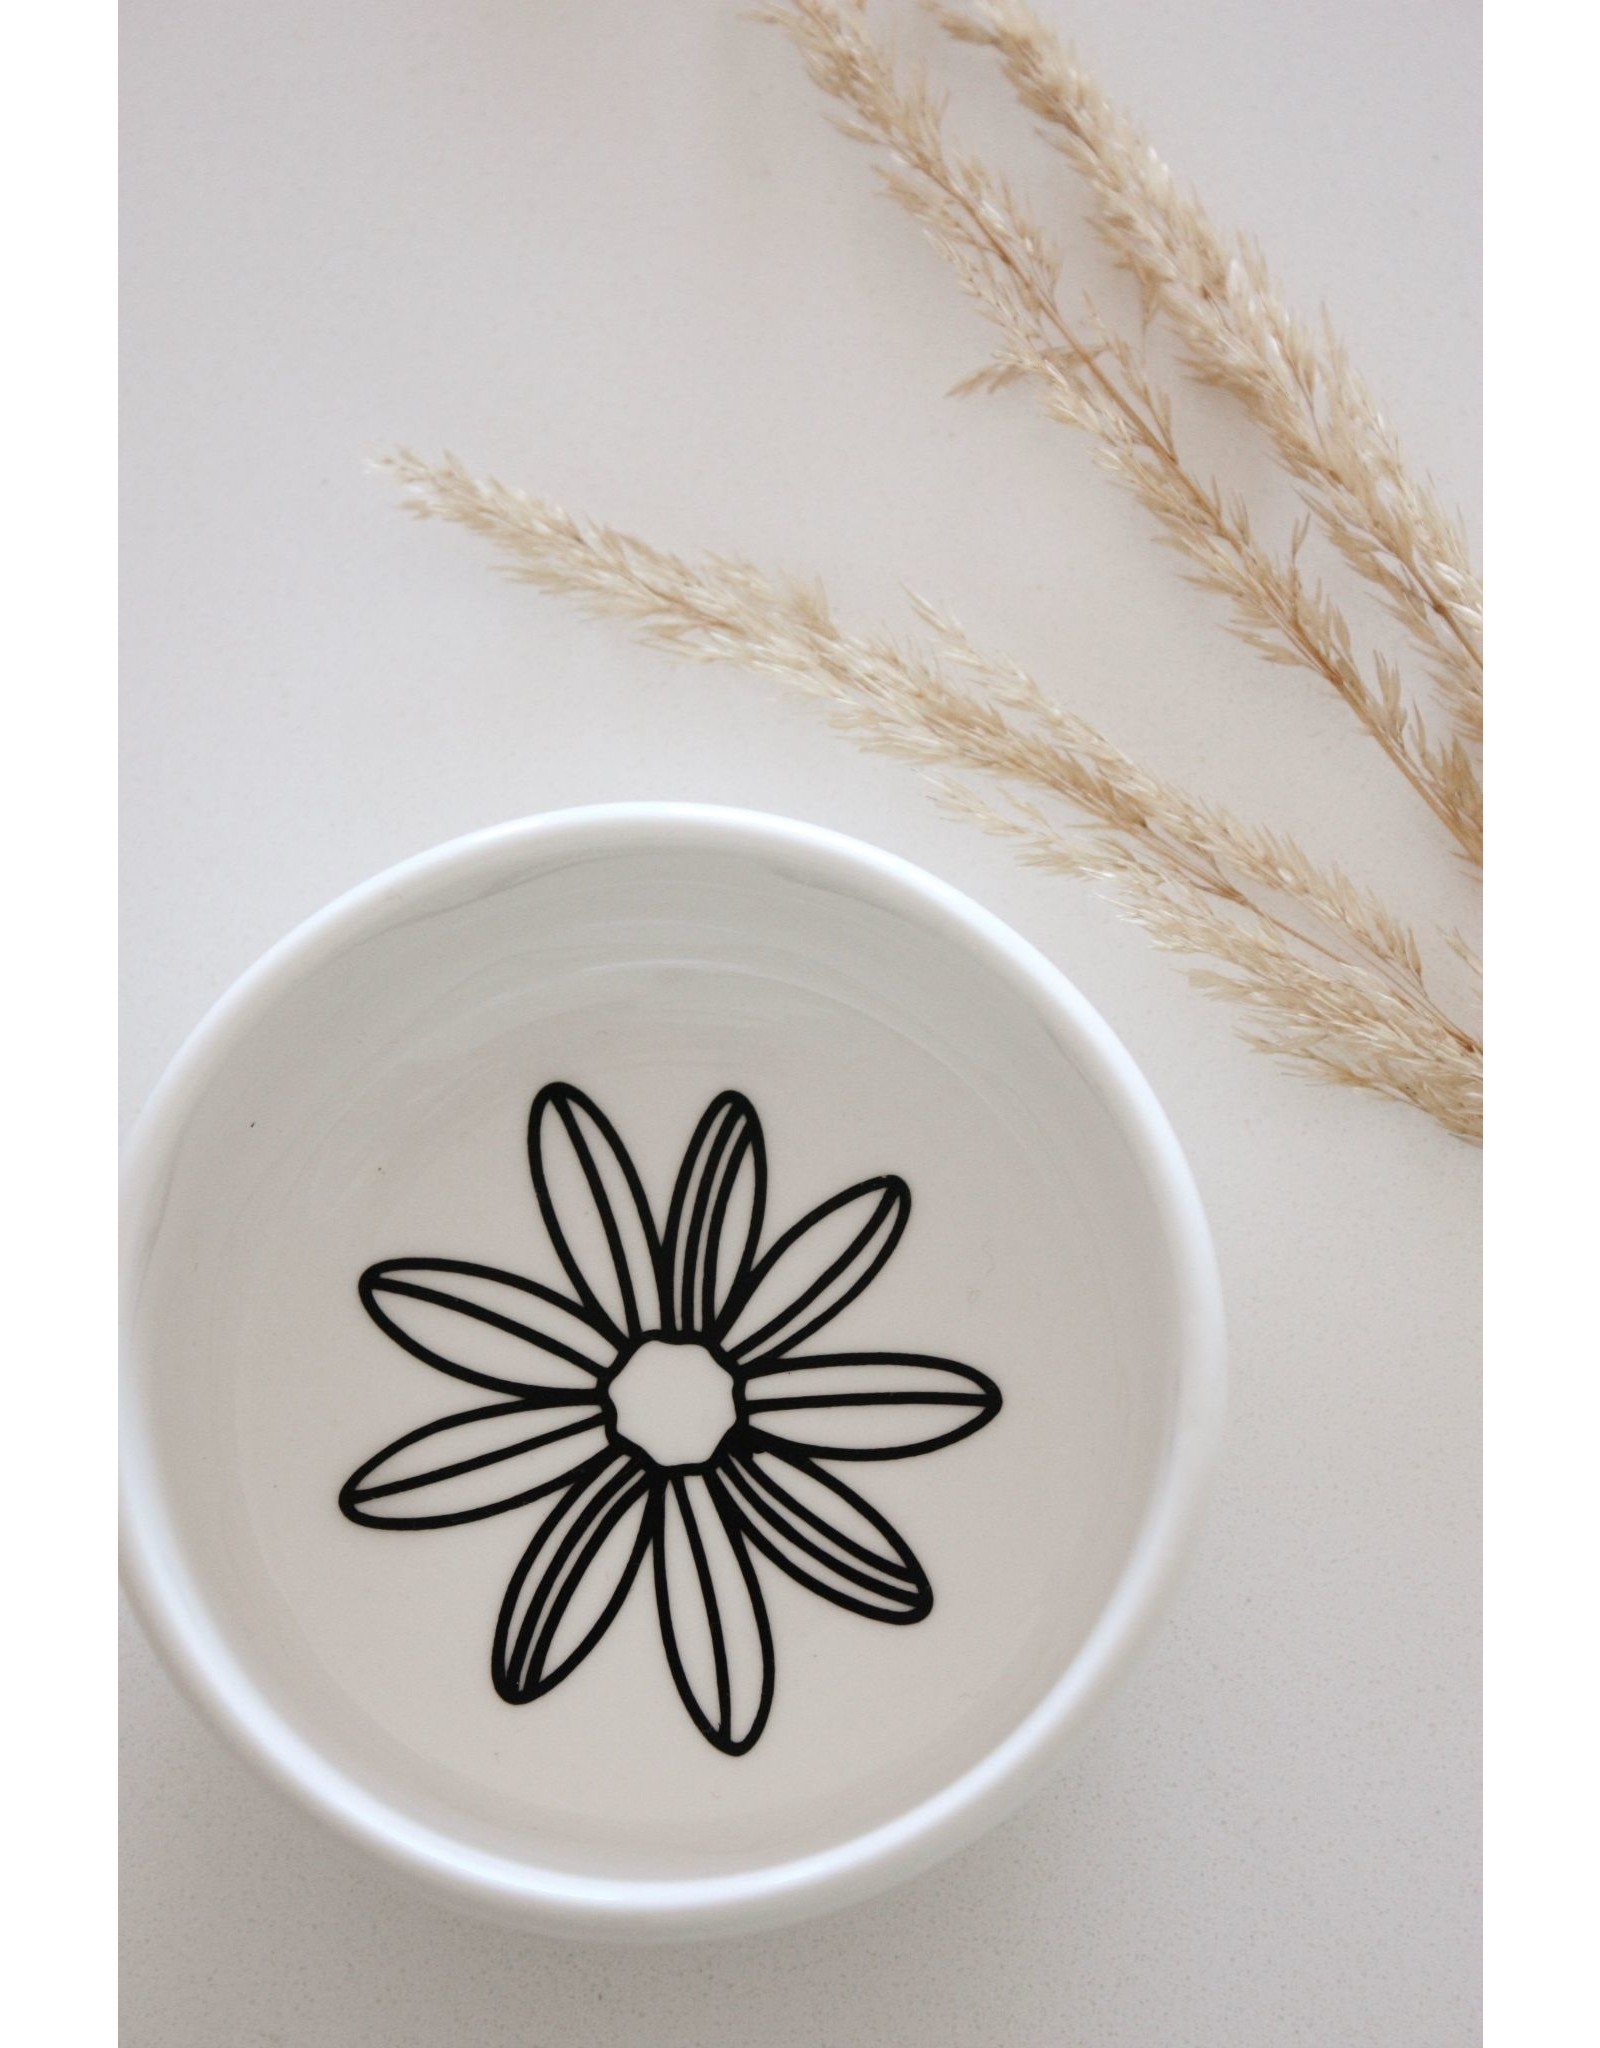 Made by Madeleine Ring Dish- Daisy